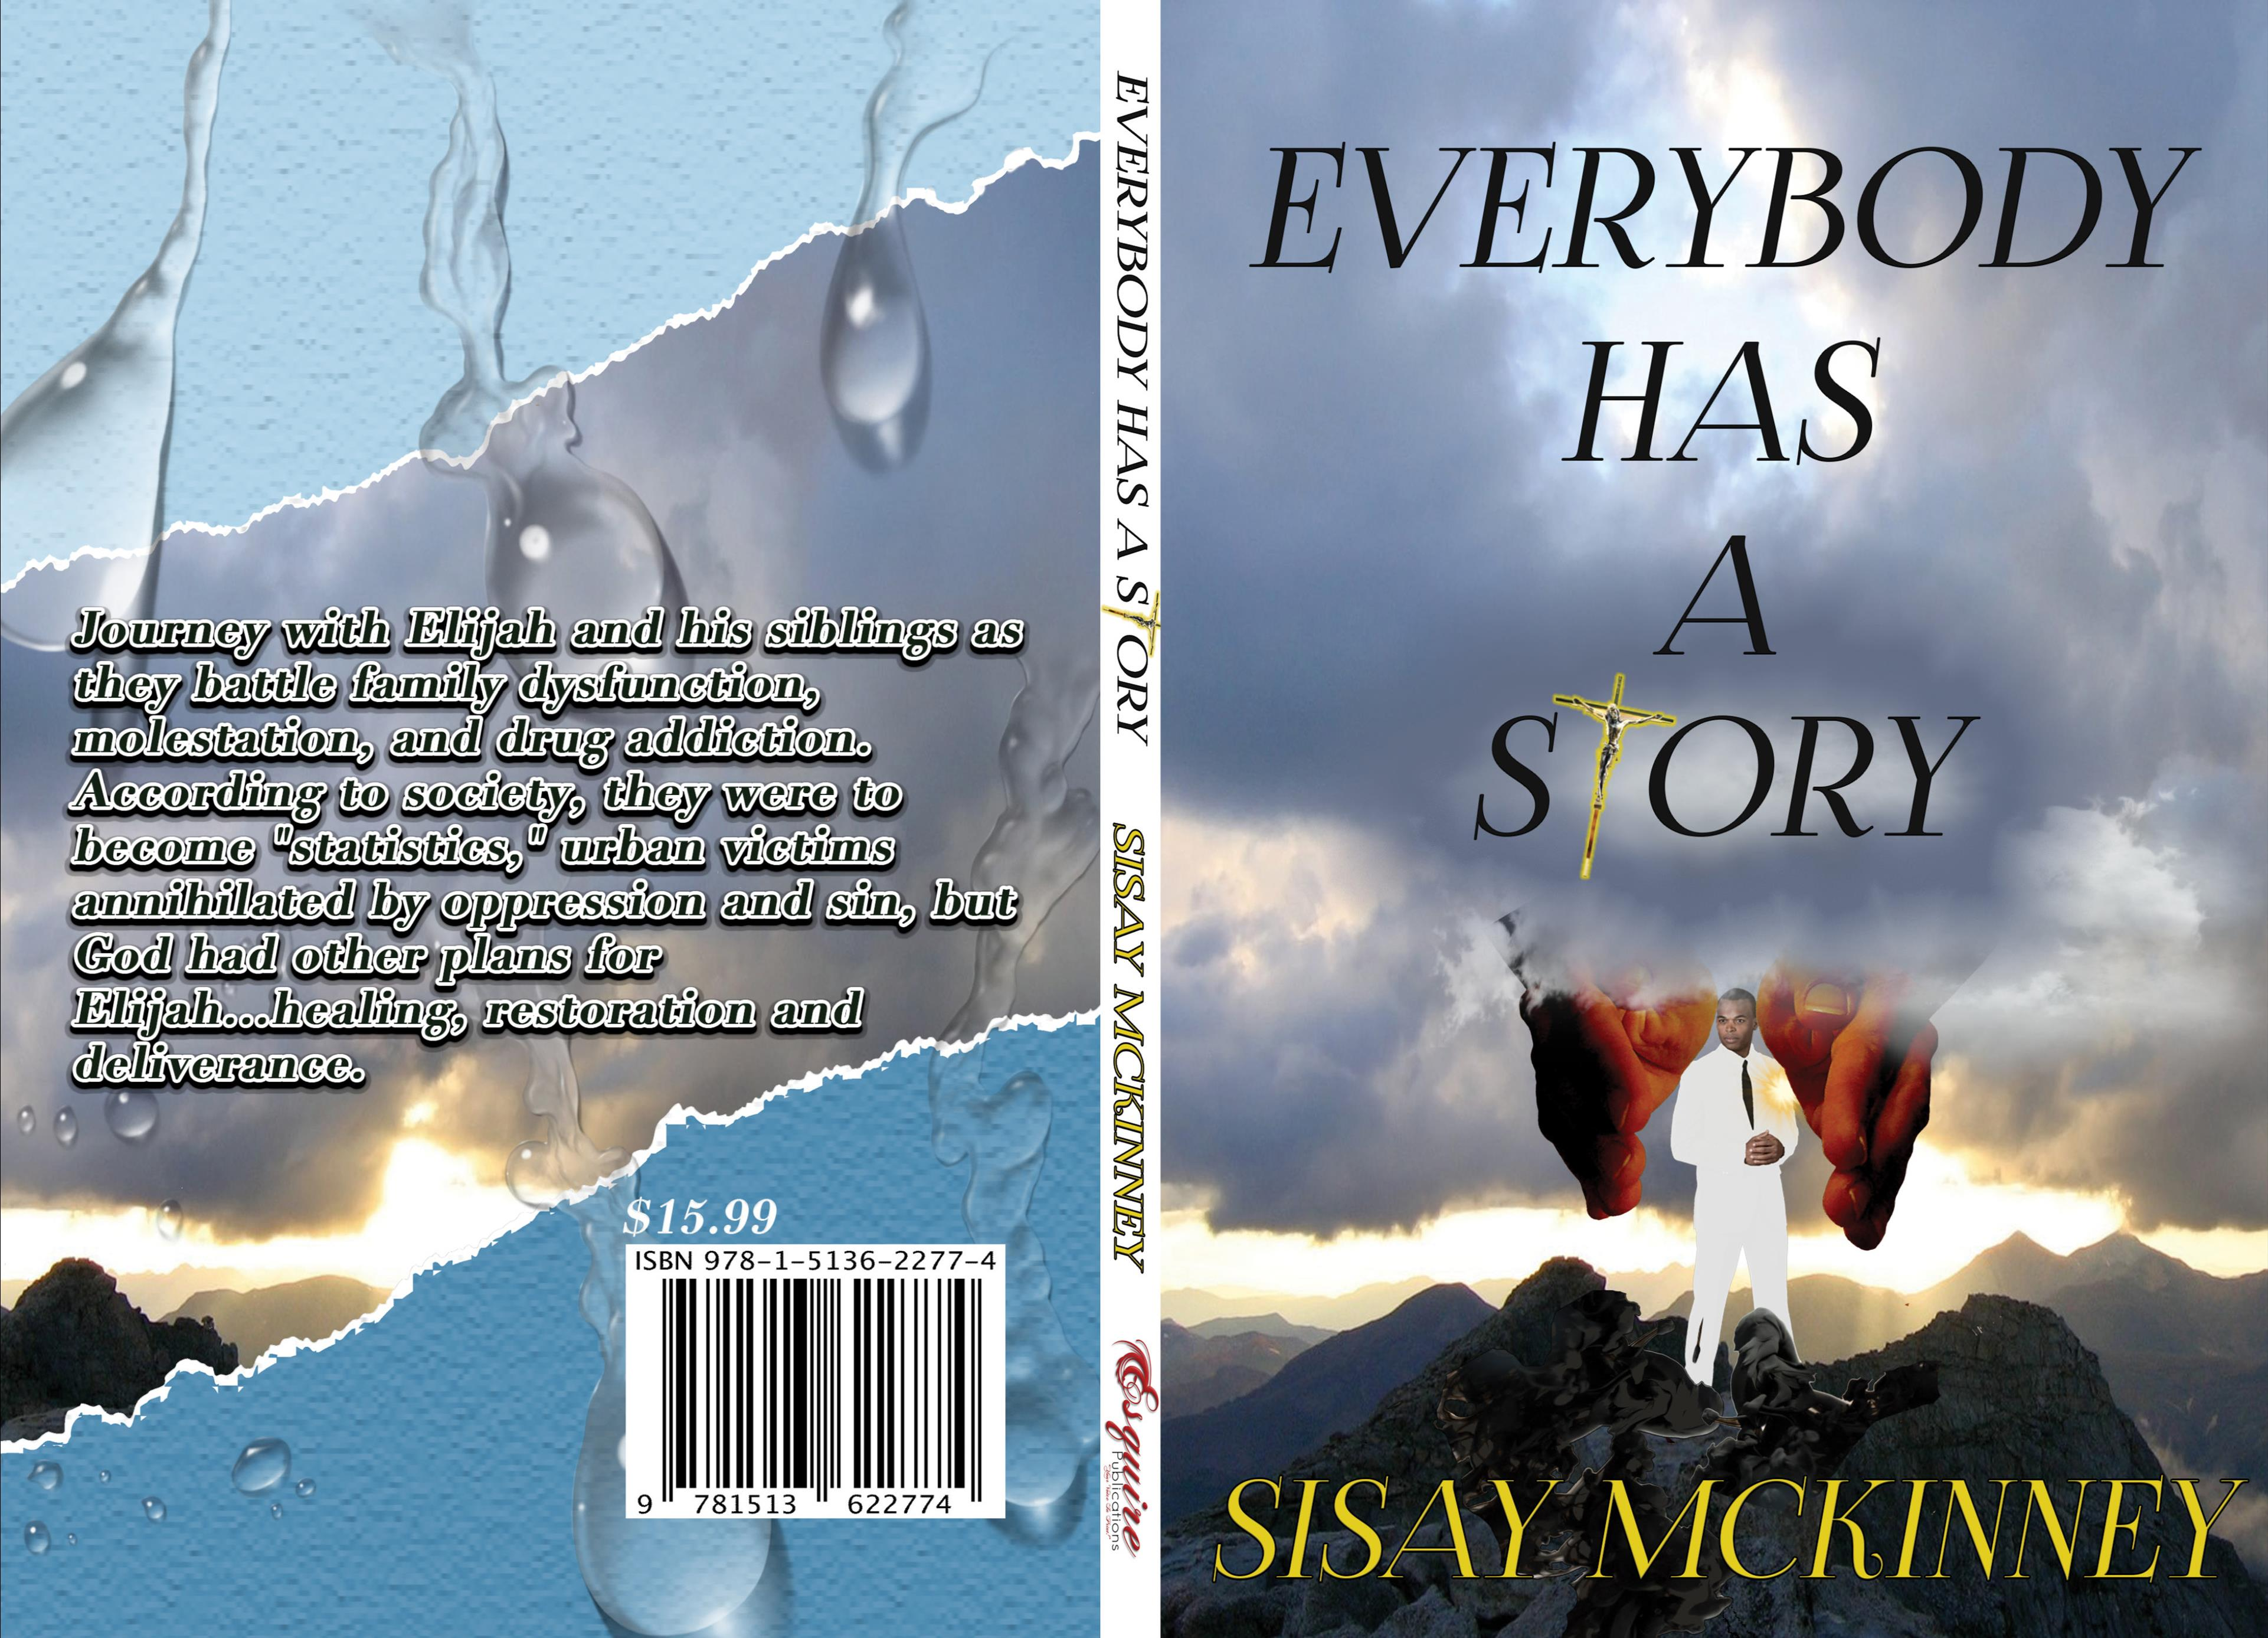 Everybody Has A Story cover image